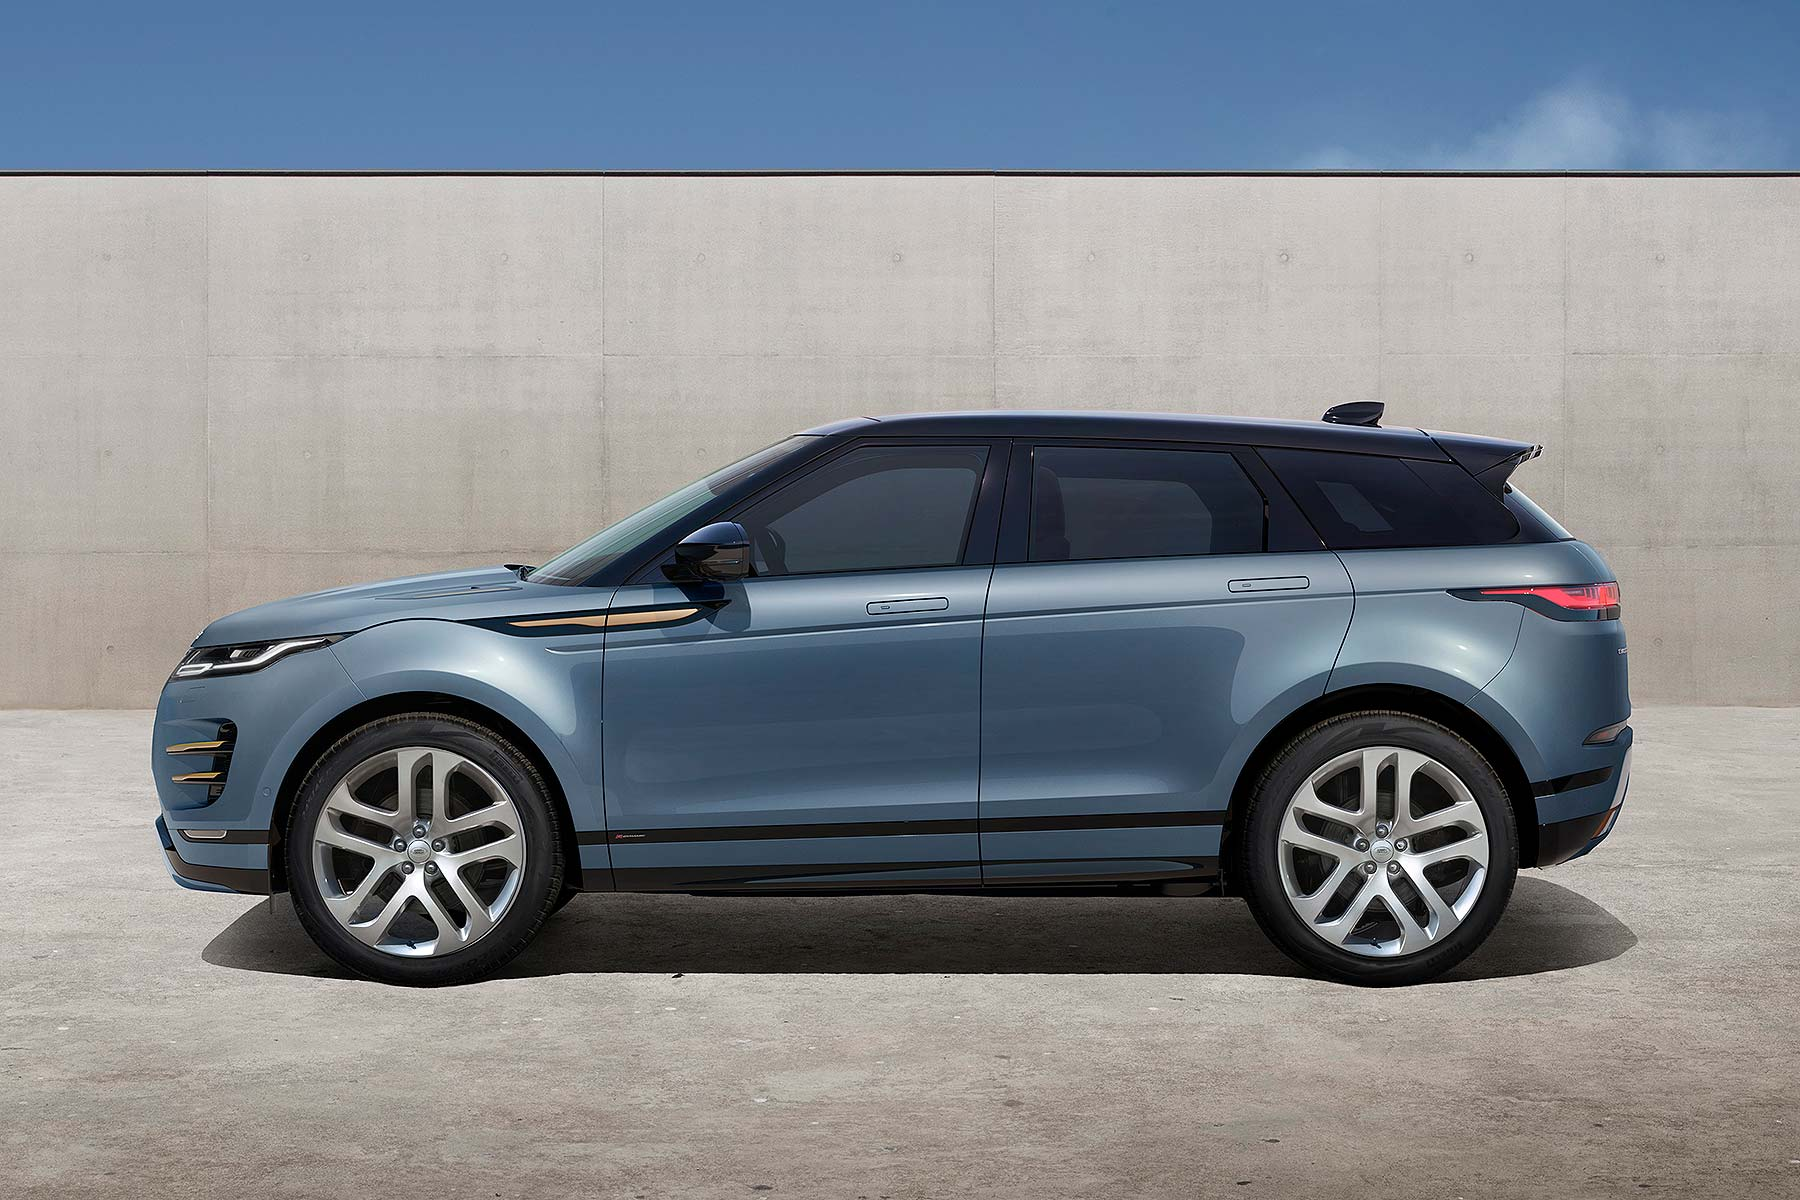 new 2019 range rover evoque revealed and ordering is open now motoring research. Black Bedroom Furniture Sets. Home Design Ideas